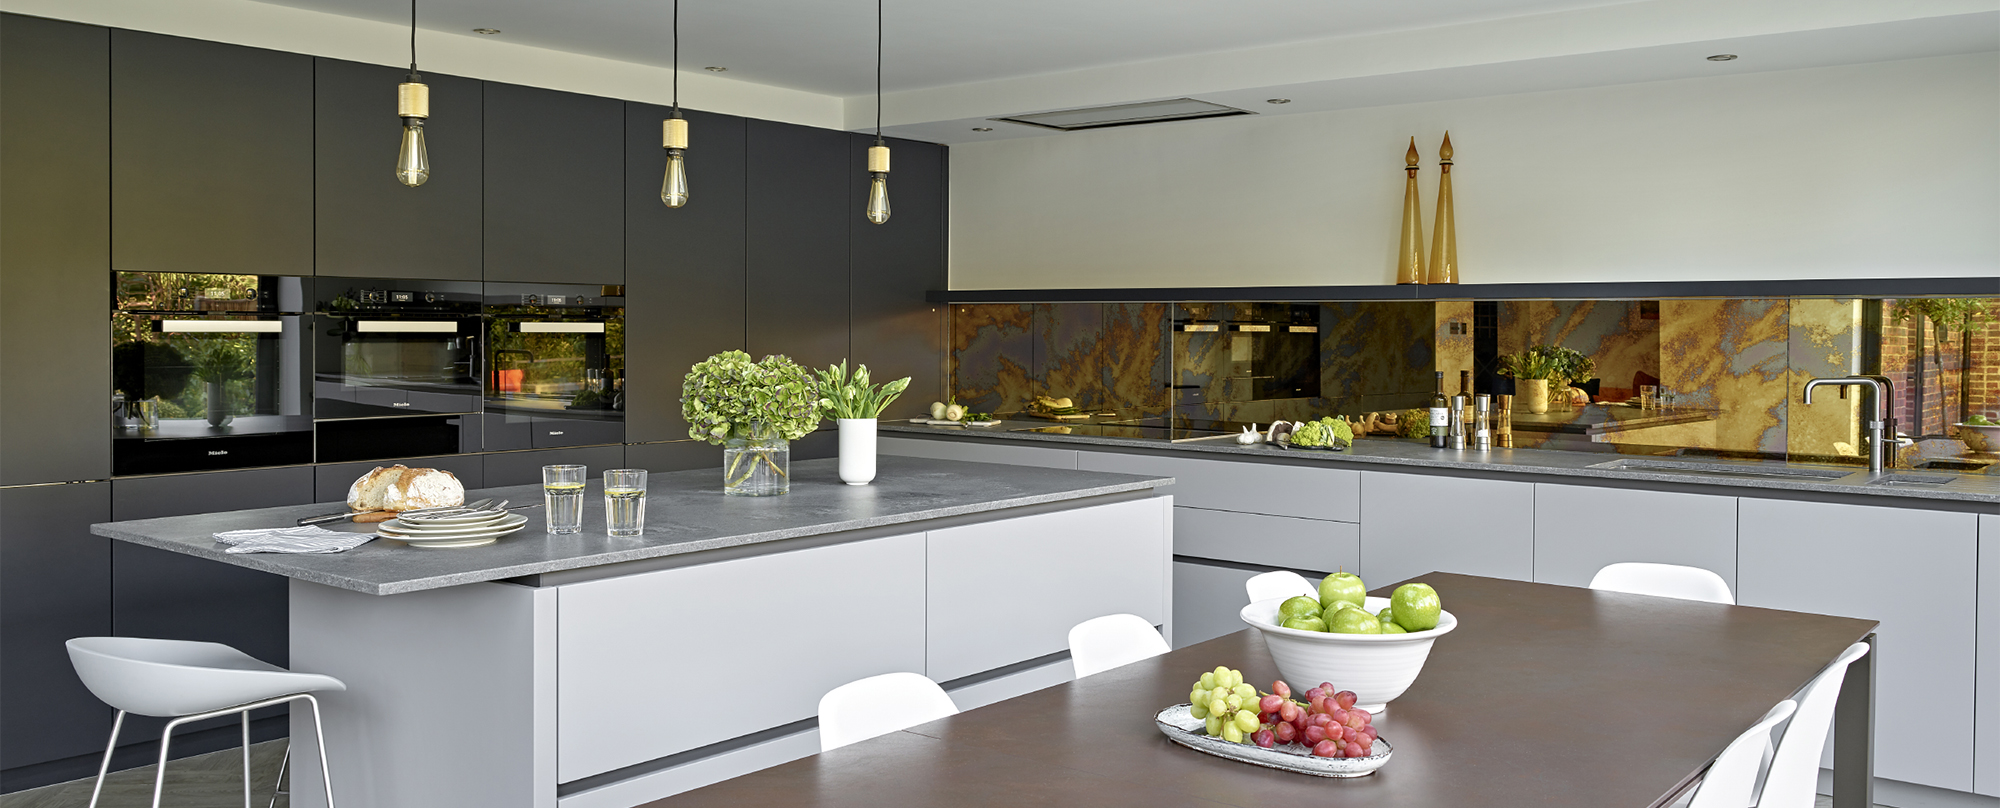 Chobham Modern kitchen dining room design with inky blue and mid grey handleless cabinets, rustic concrete quartz worktops and antique bronze mirror splashback.